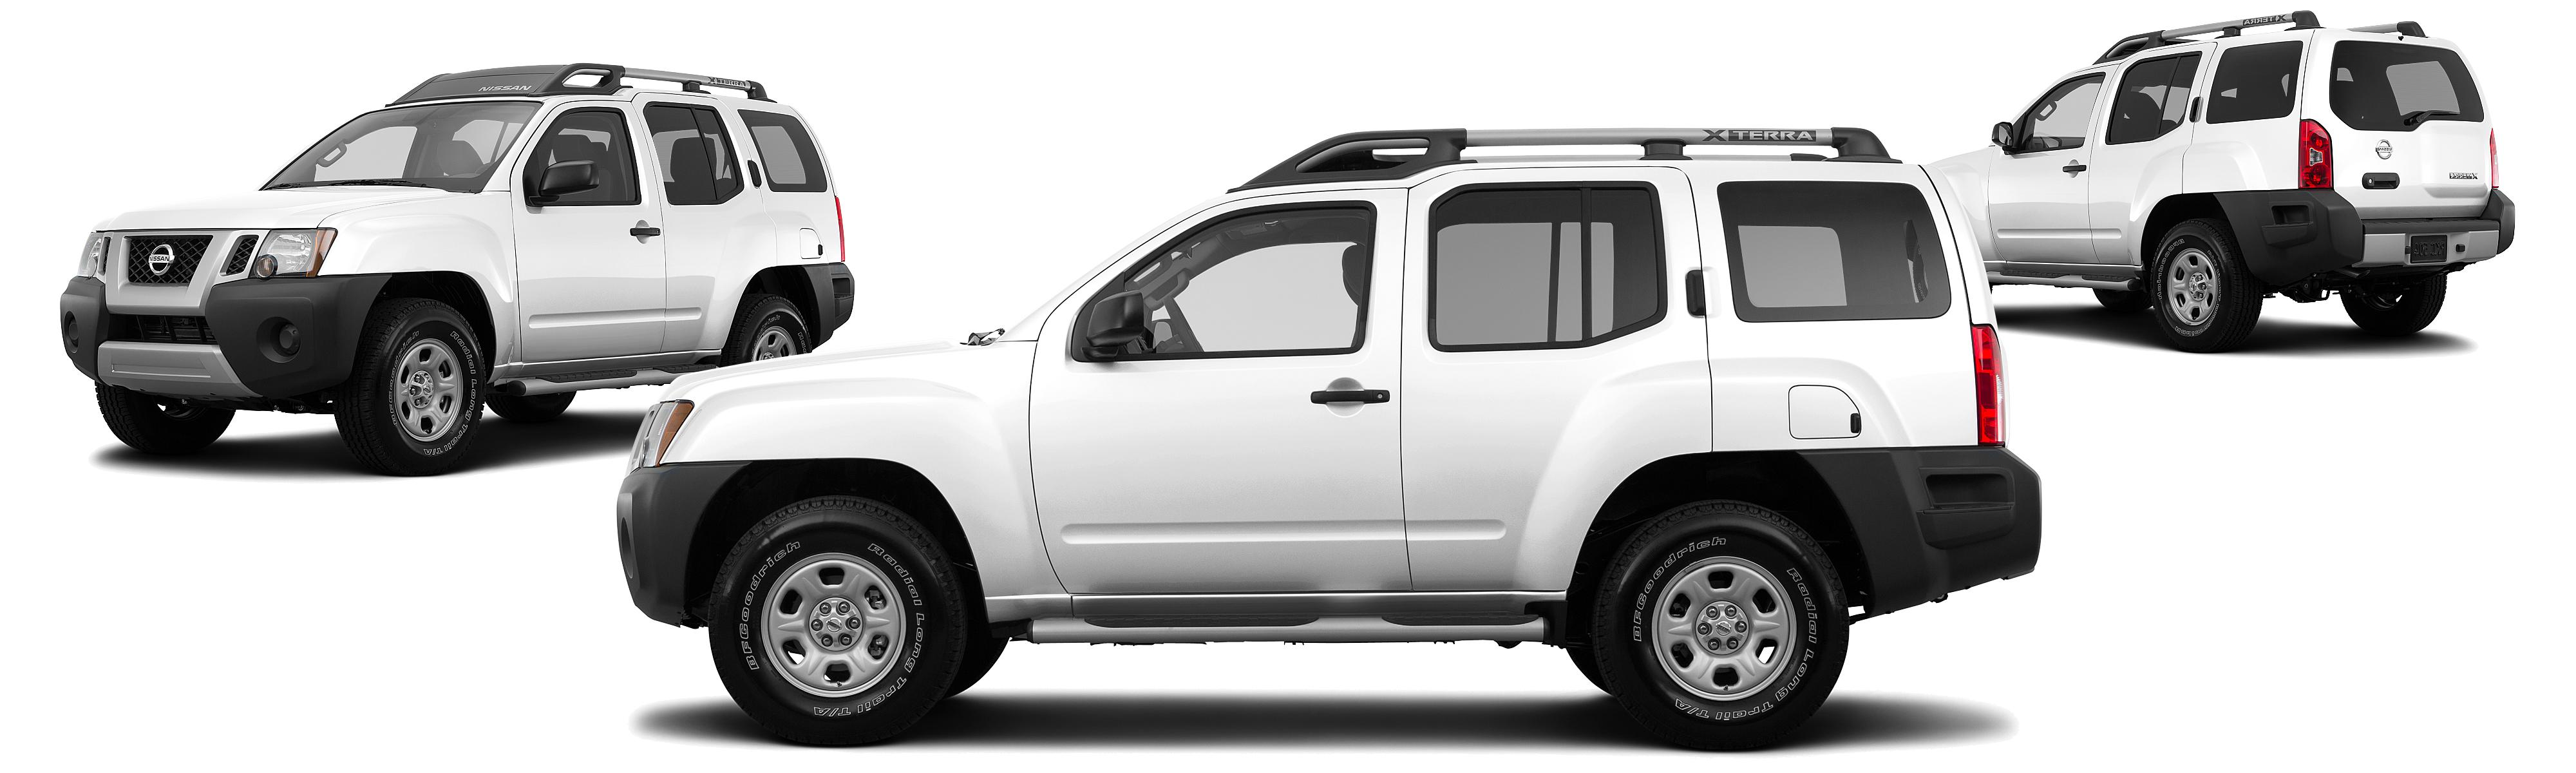 pro my build for adventure the phases xterra edit img discover nissan